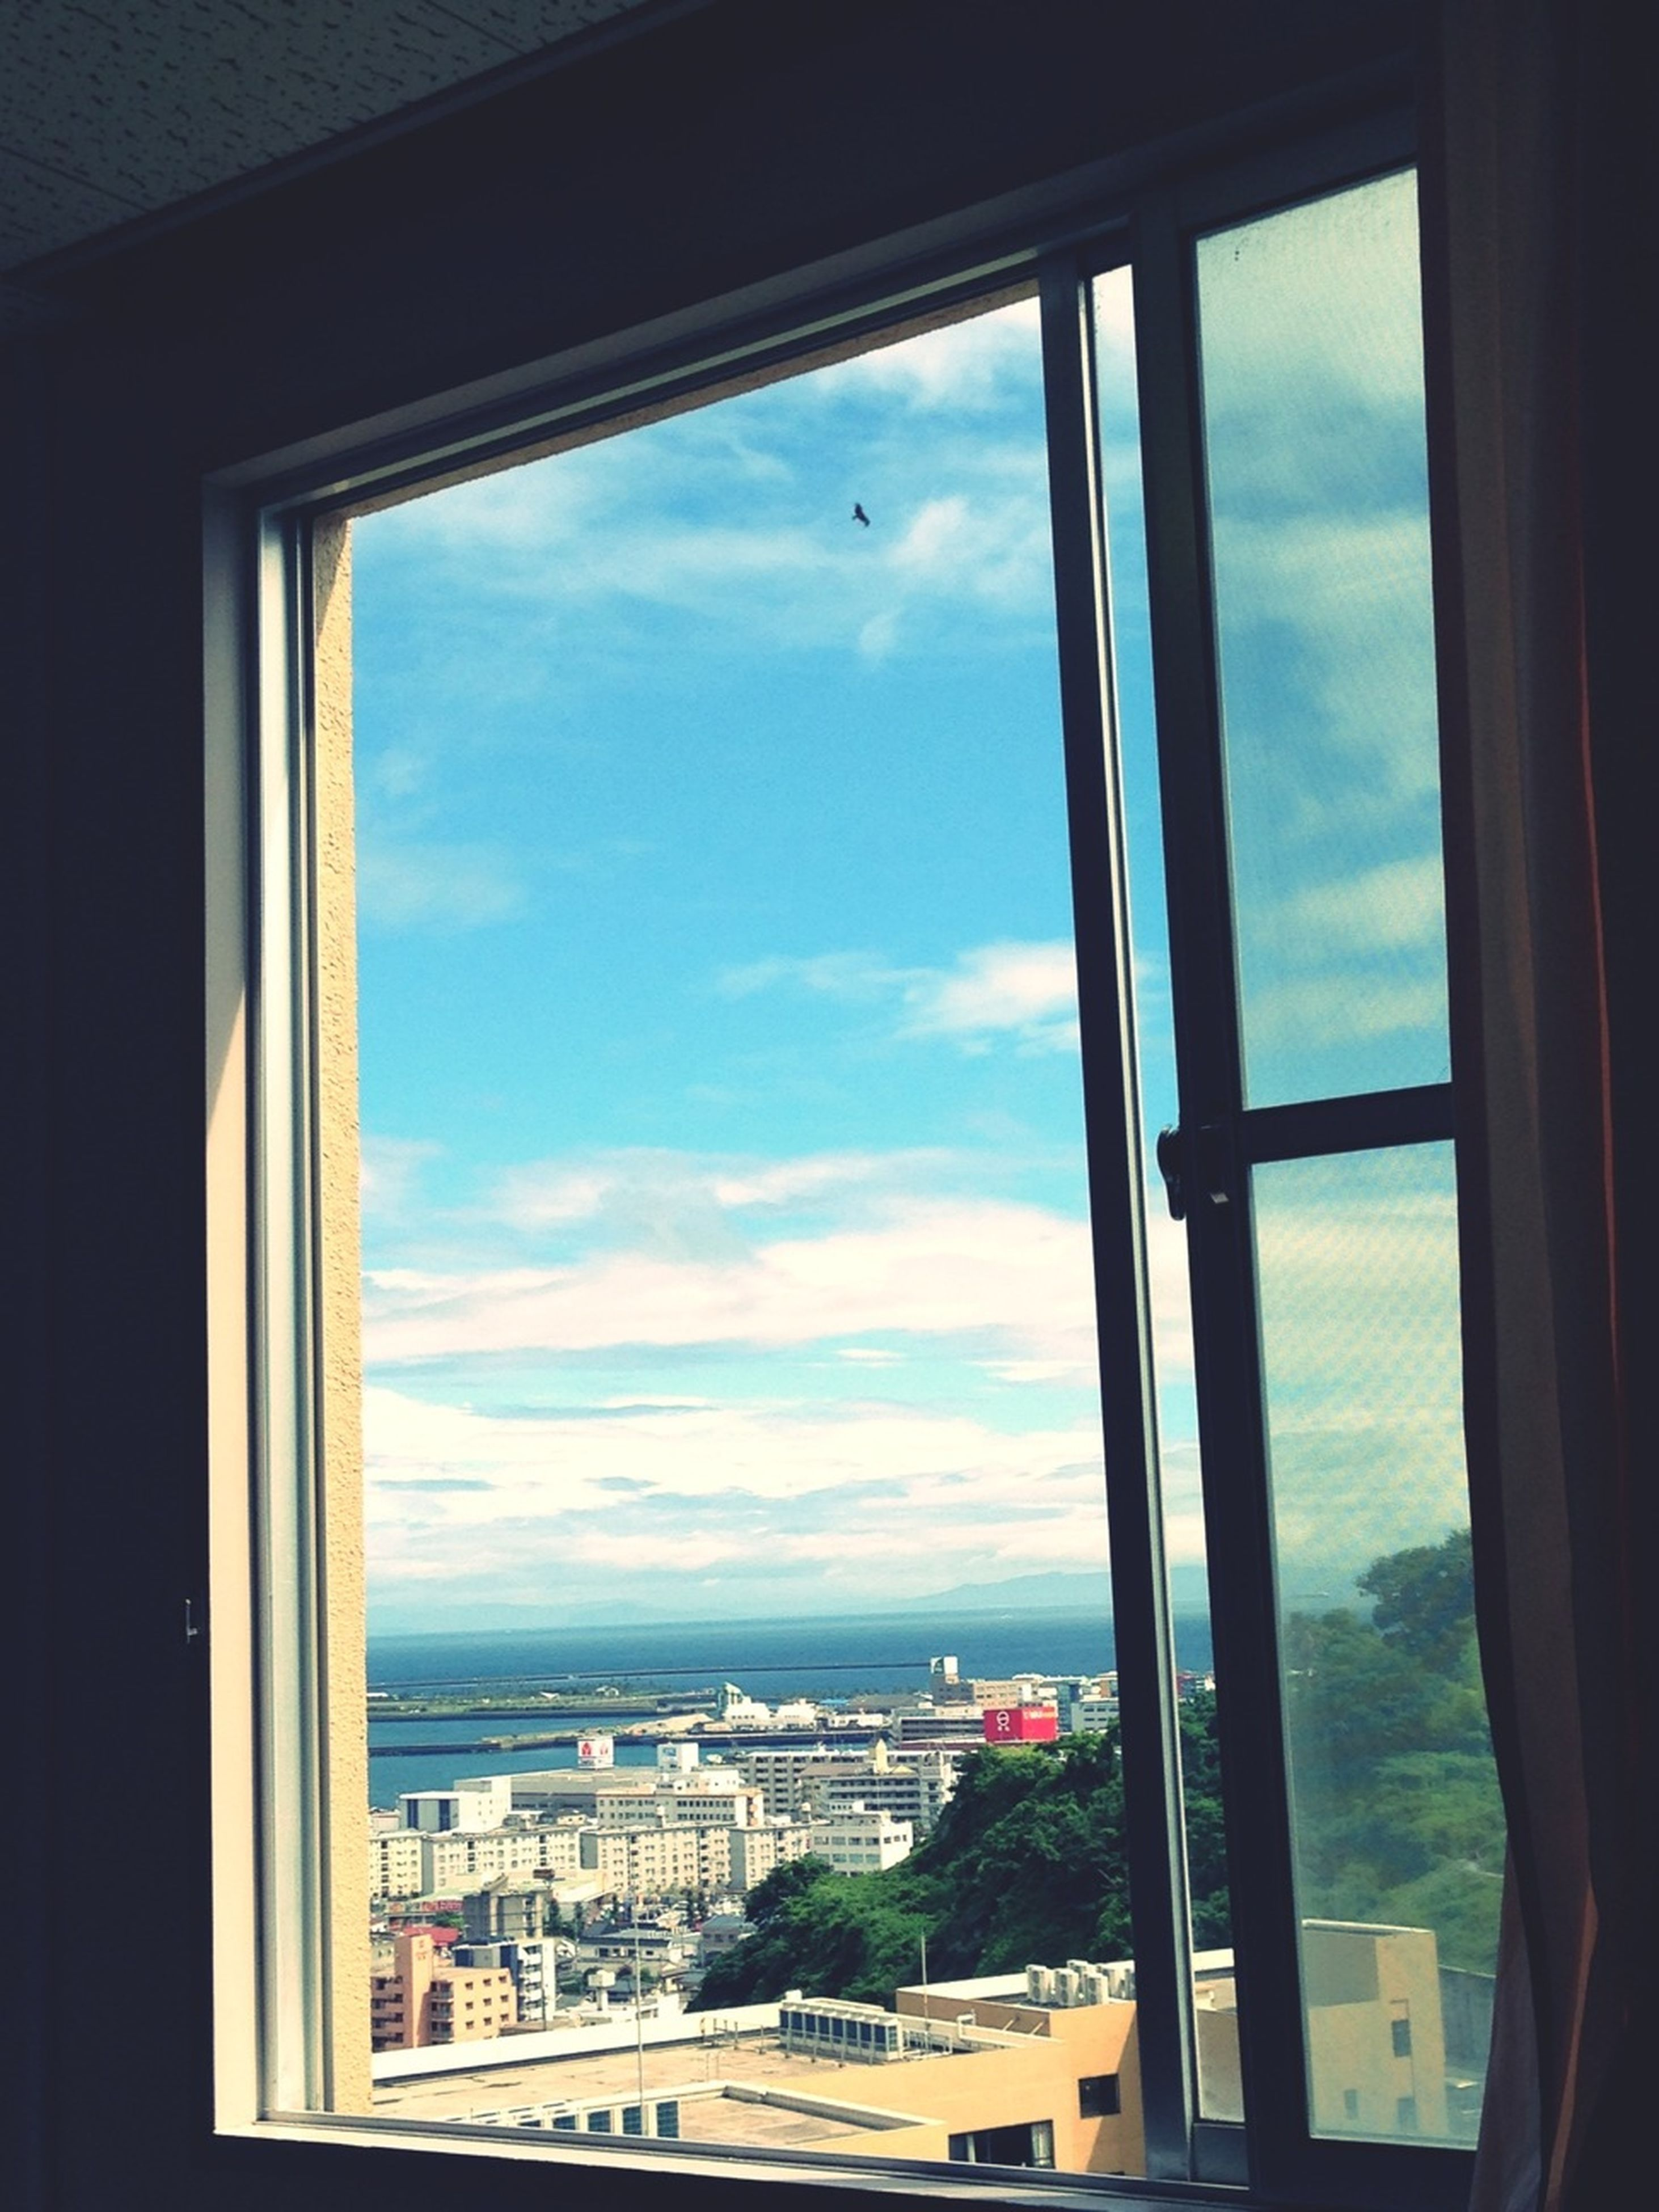 window, indoors, transparent, glass - material, sky, architecture, built structure, sea, looking through window, vehicle interior, cityscape, cloud - sky, city, transportation, cloud, water, day, building exterior, house, glass